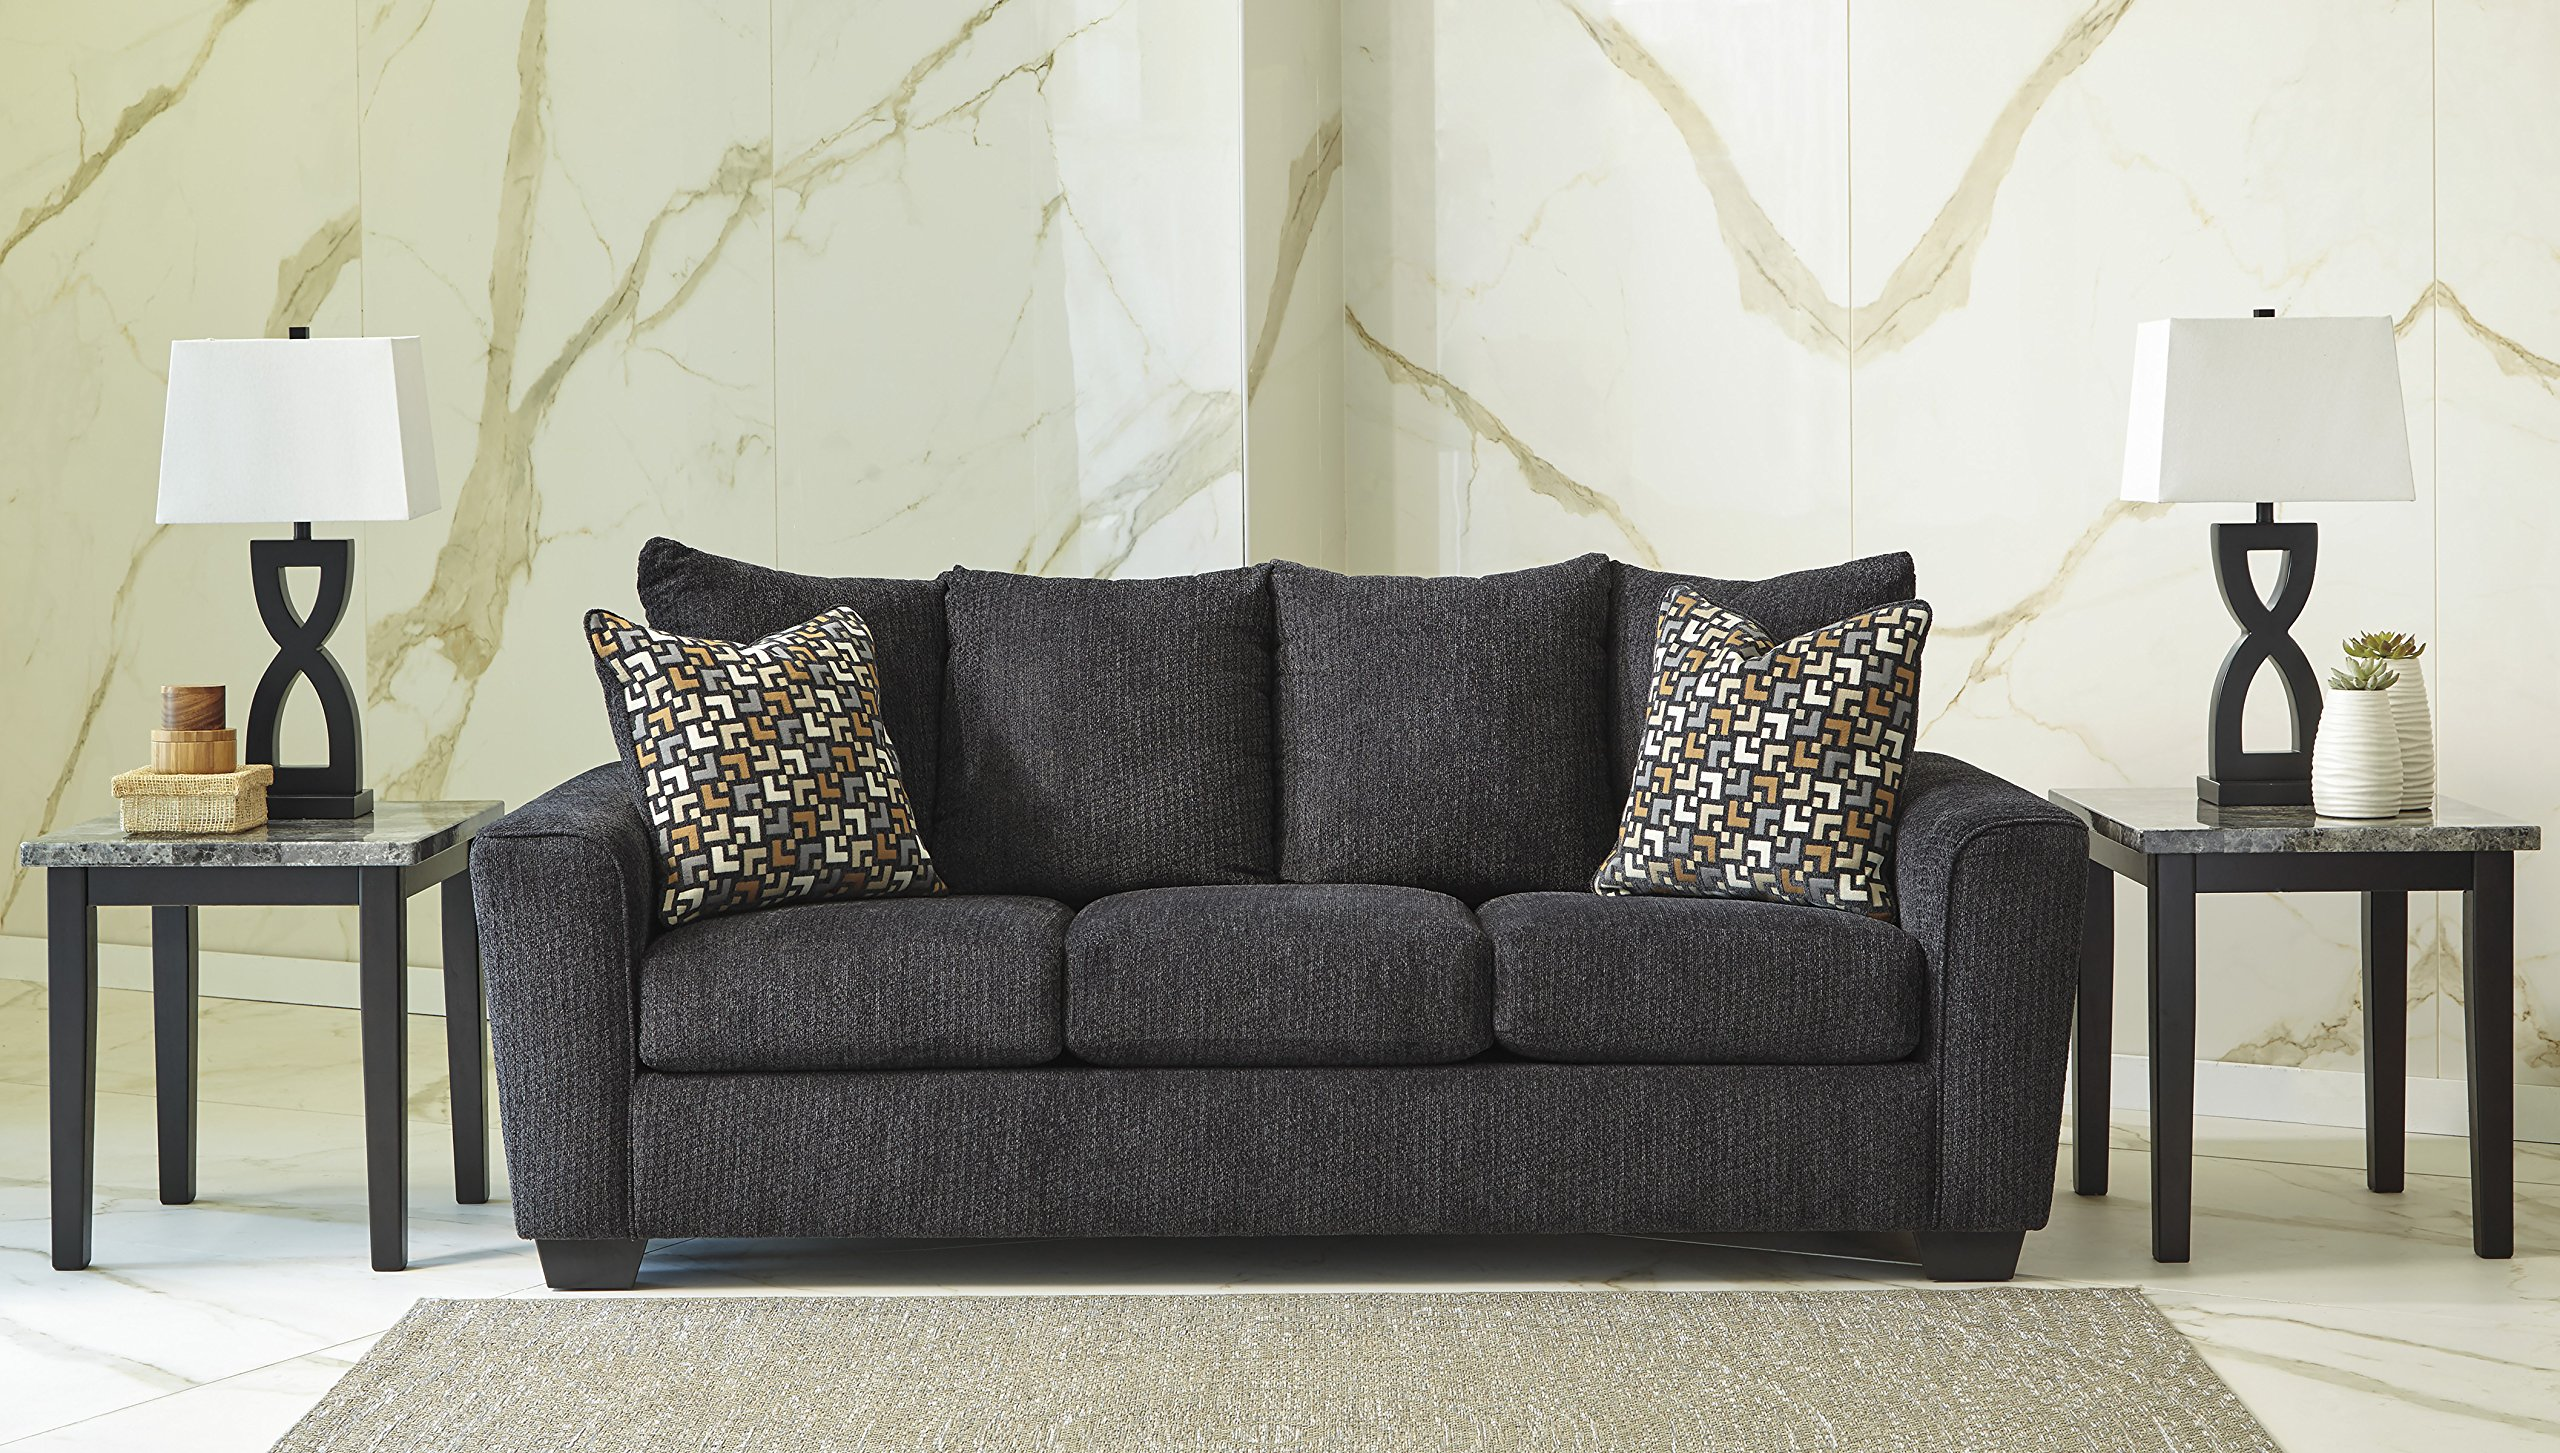 Wixon Dark Gray Fabric Pillow Back Sofa - This trendy sofa features cushion cores that are constructed of low melt fiber wrapped over high quality foam to add incredible comfort to your relaxation experience. The large profile provides you with ample seating space, and sharpe arms give it a modern look. Corners are glued, blocked and stapled. Seats and back spring rails are cut from hardwood and engineered lumber. The black finish provides welcome contrast with the slate color chenille upholstery, while thick pillow back and matching throw pillows finish off the look. - sofas-couches, living-room-furniture, living-room - 916pYpTyyiL -